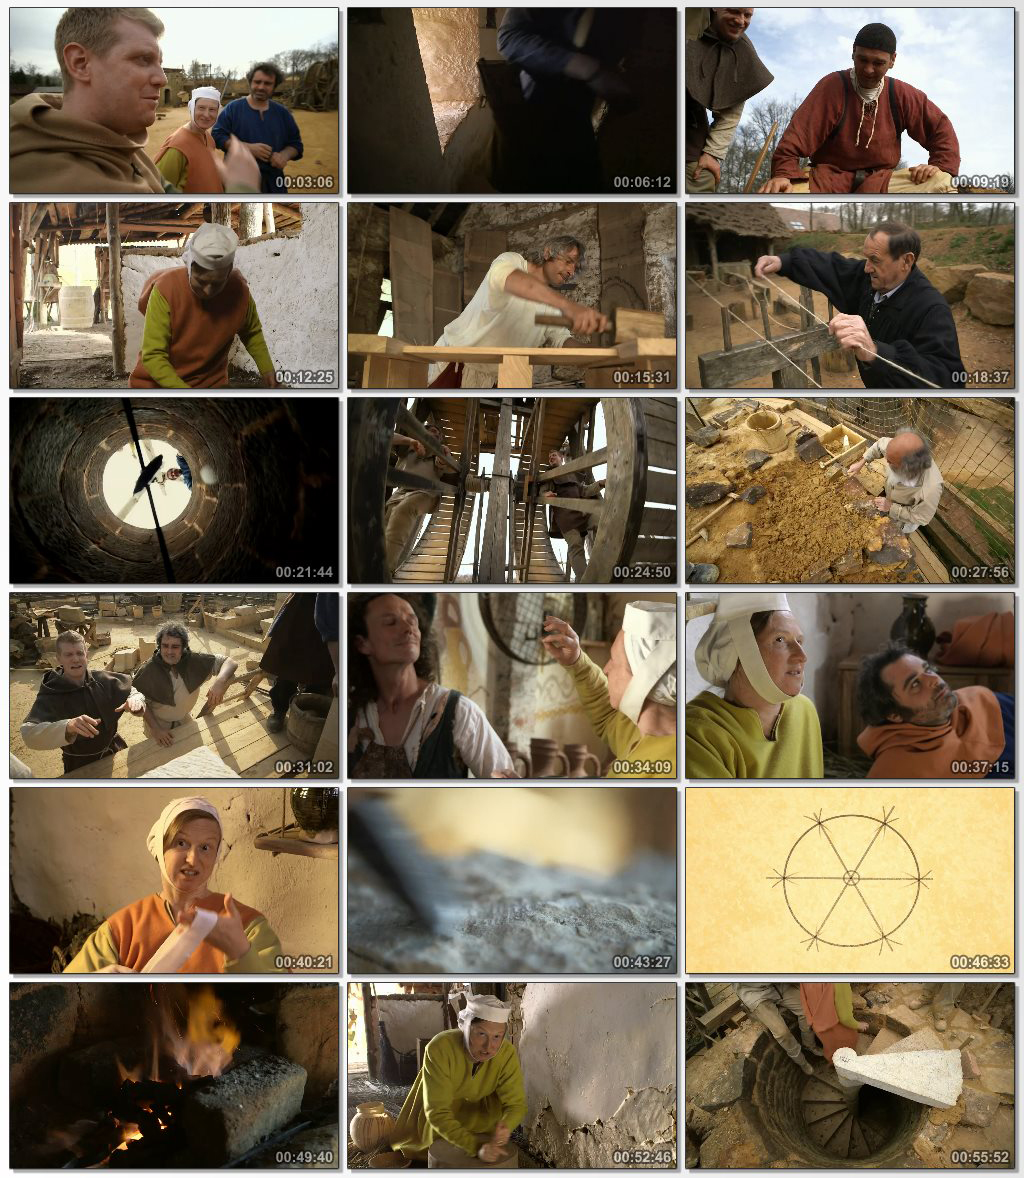 BBC.Secrets.of.the.Castle.with.Ruth.Peter.and.Tom.1of5.720p.HDTV.x264.AAC.MVGroup.mp4_thumbs_[2014.12.24_18.36.40]